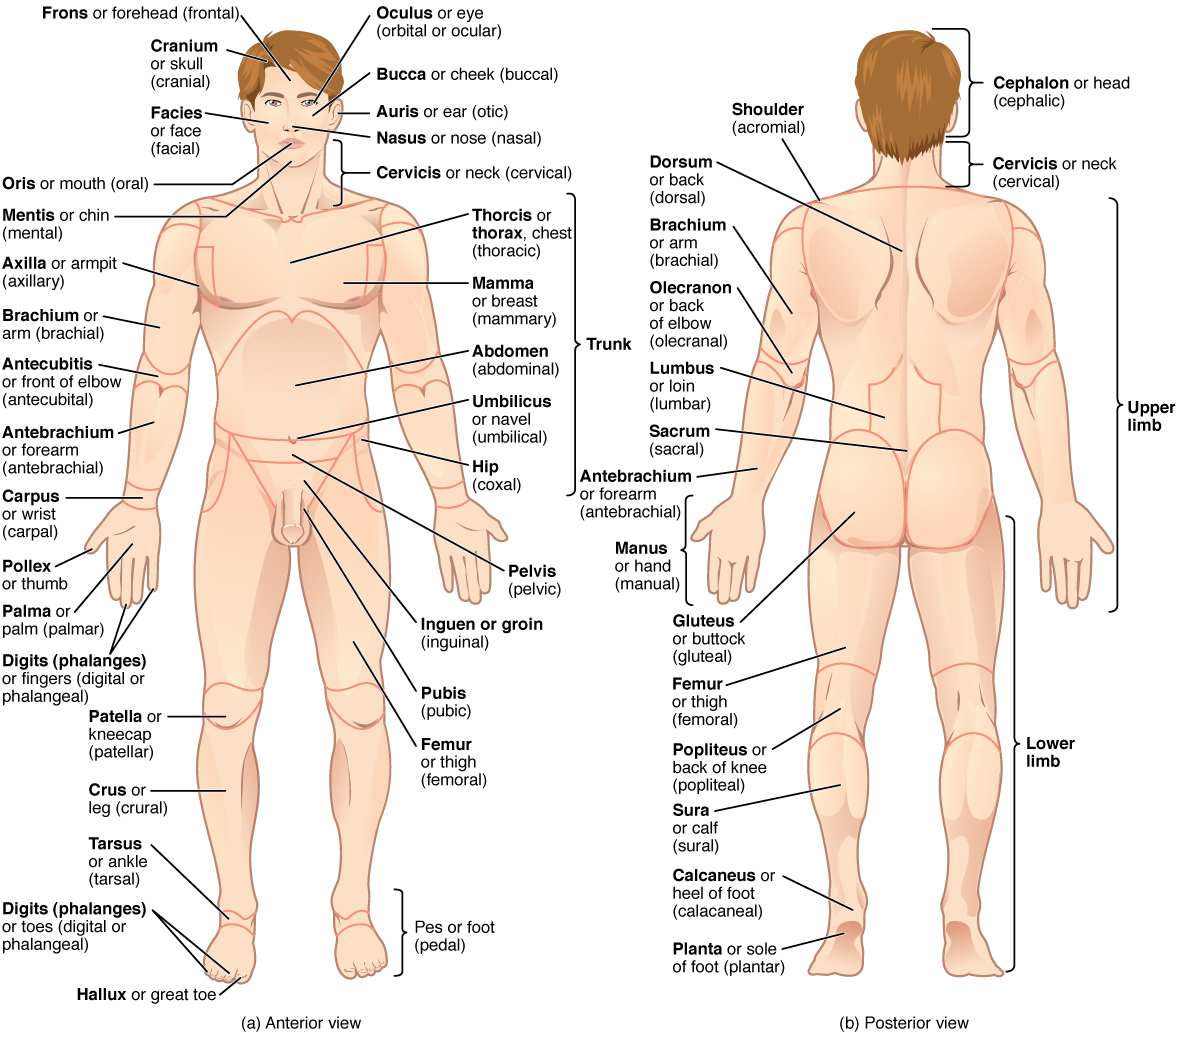 E-Book 05 - Anatomical Terminology: Anatomical Position